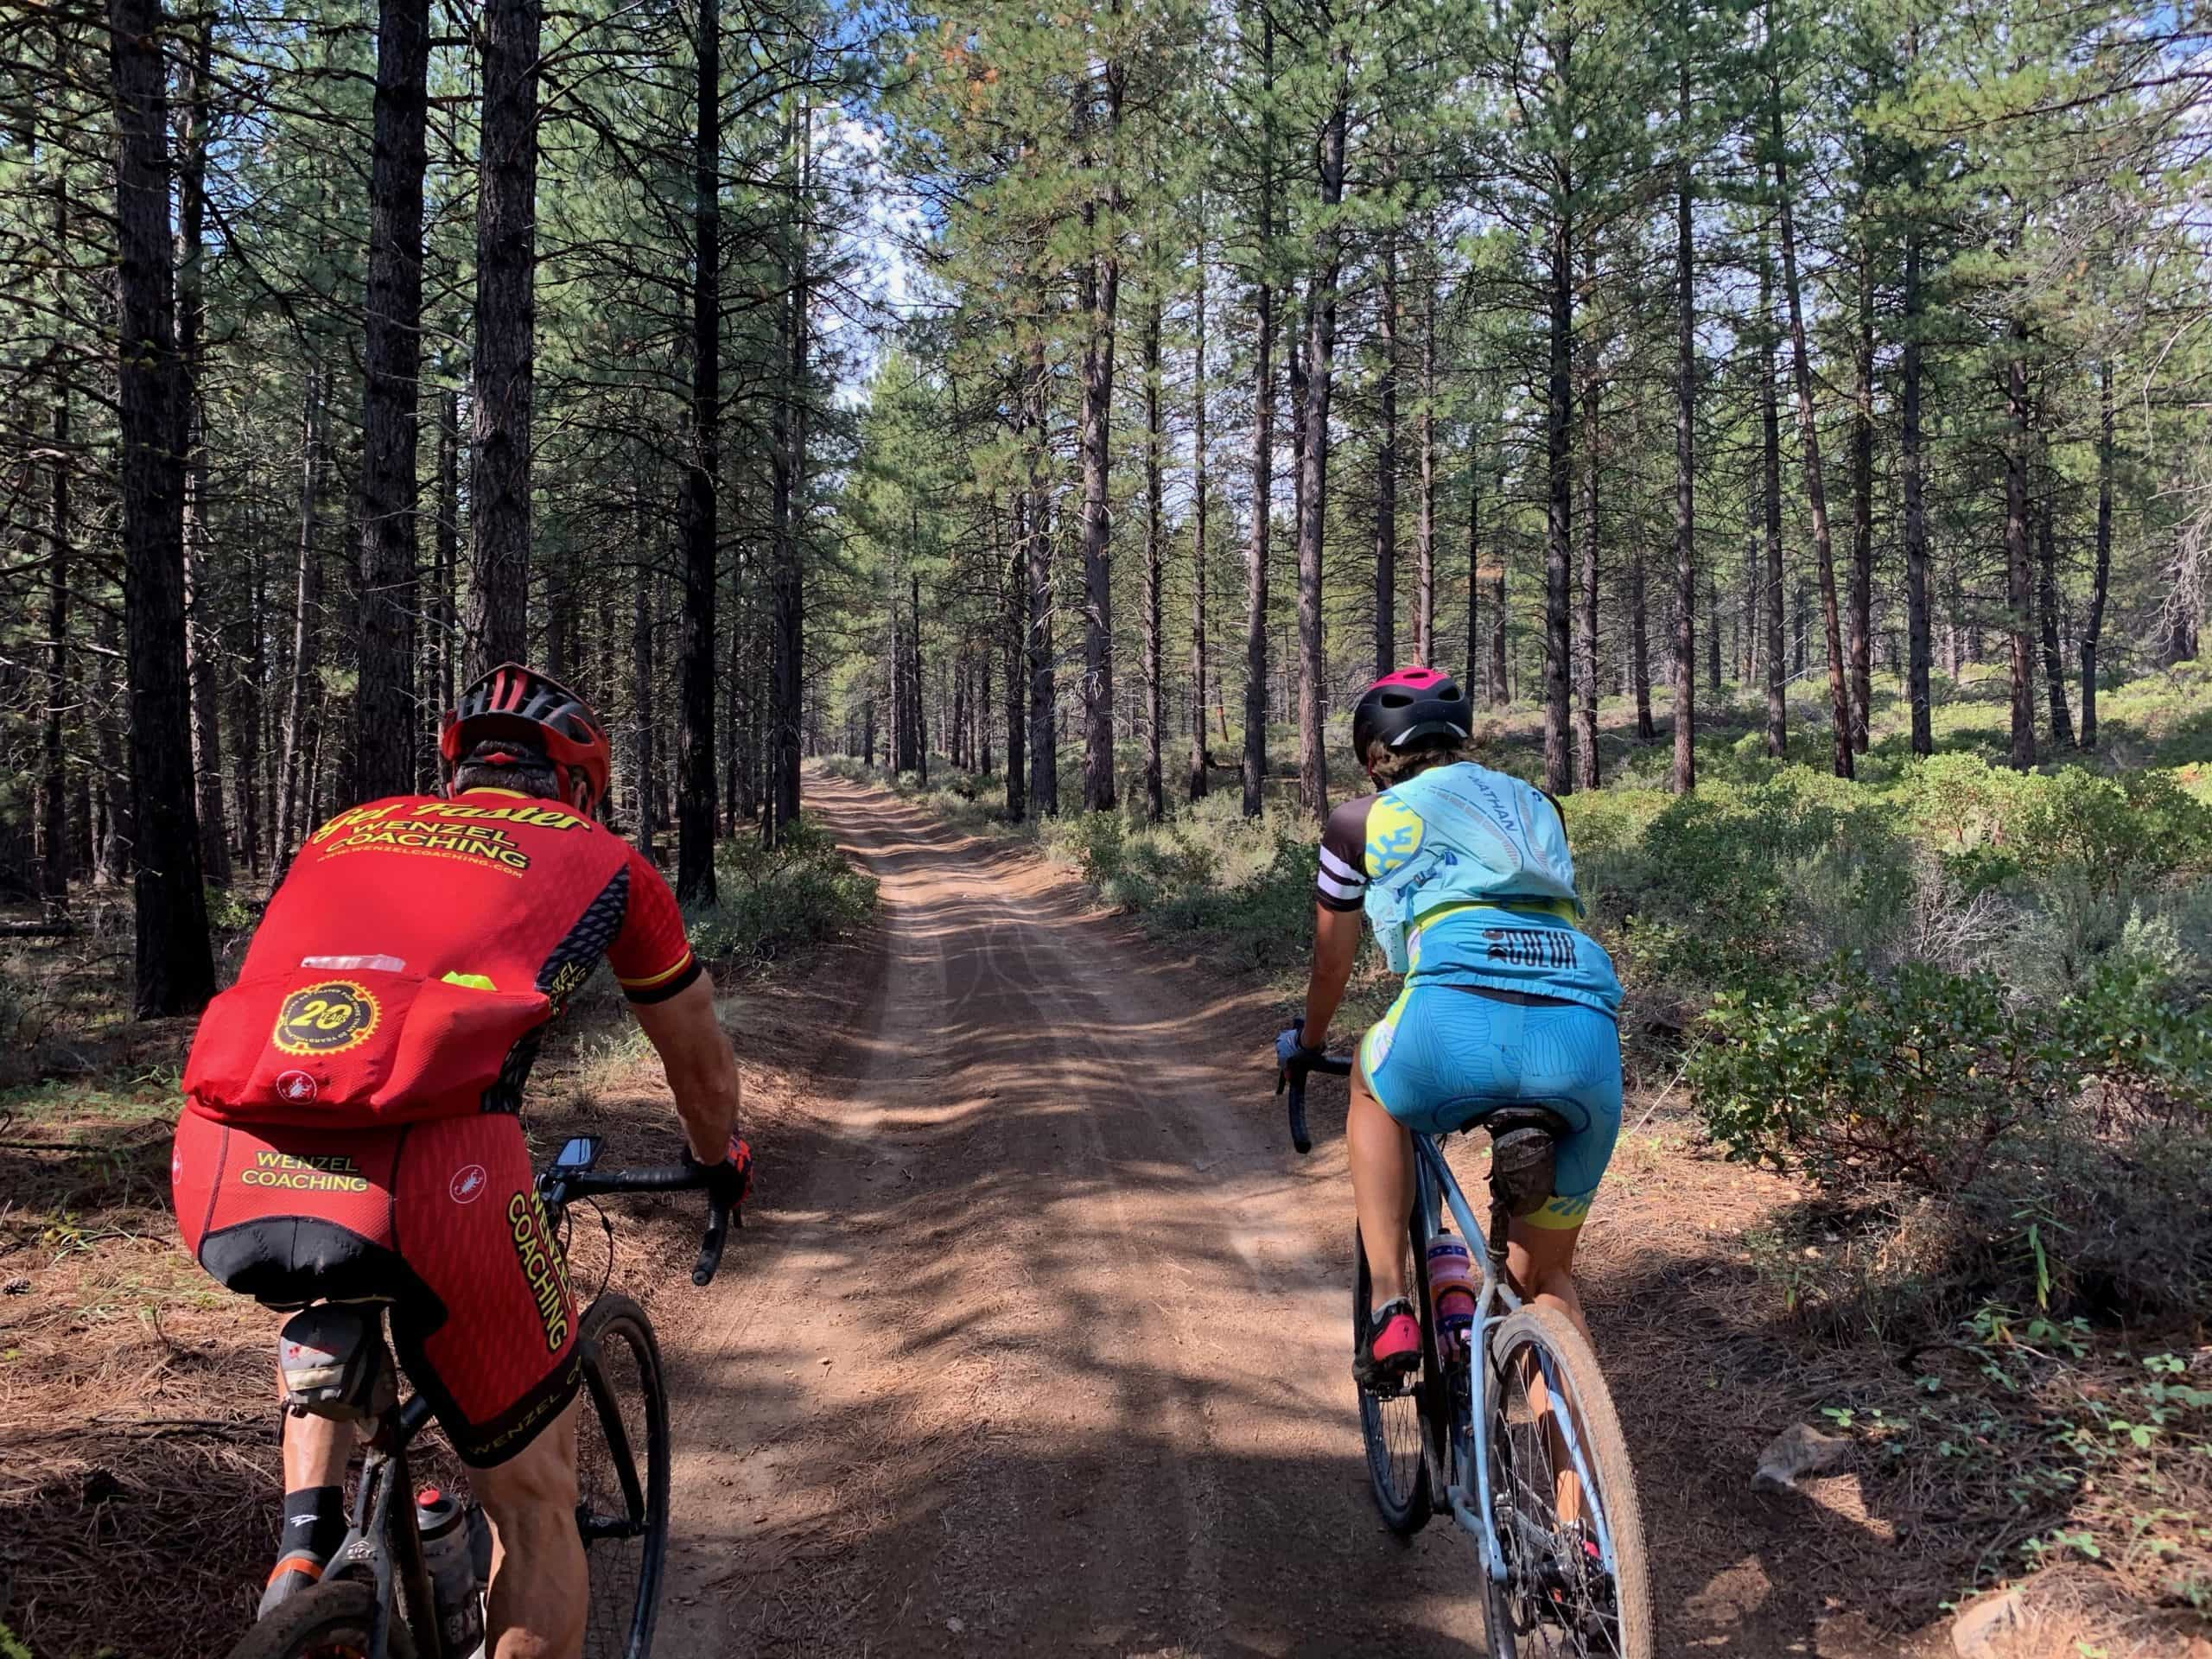 Gravel cyclists in the Deschutes National forest near Phil's Trailhead.